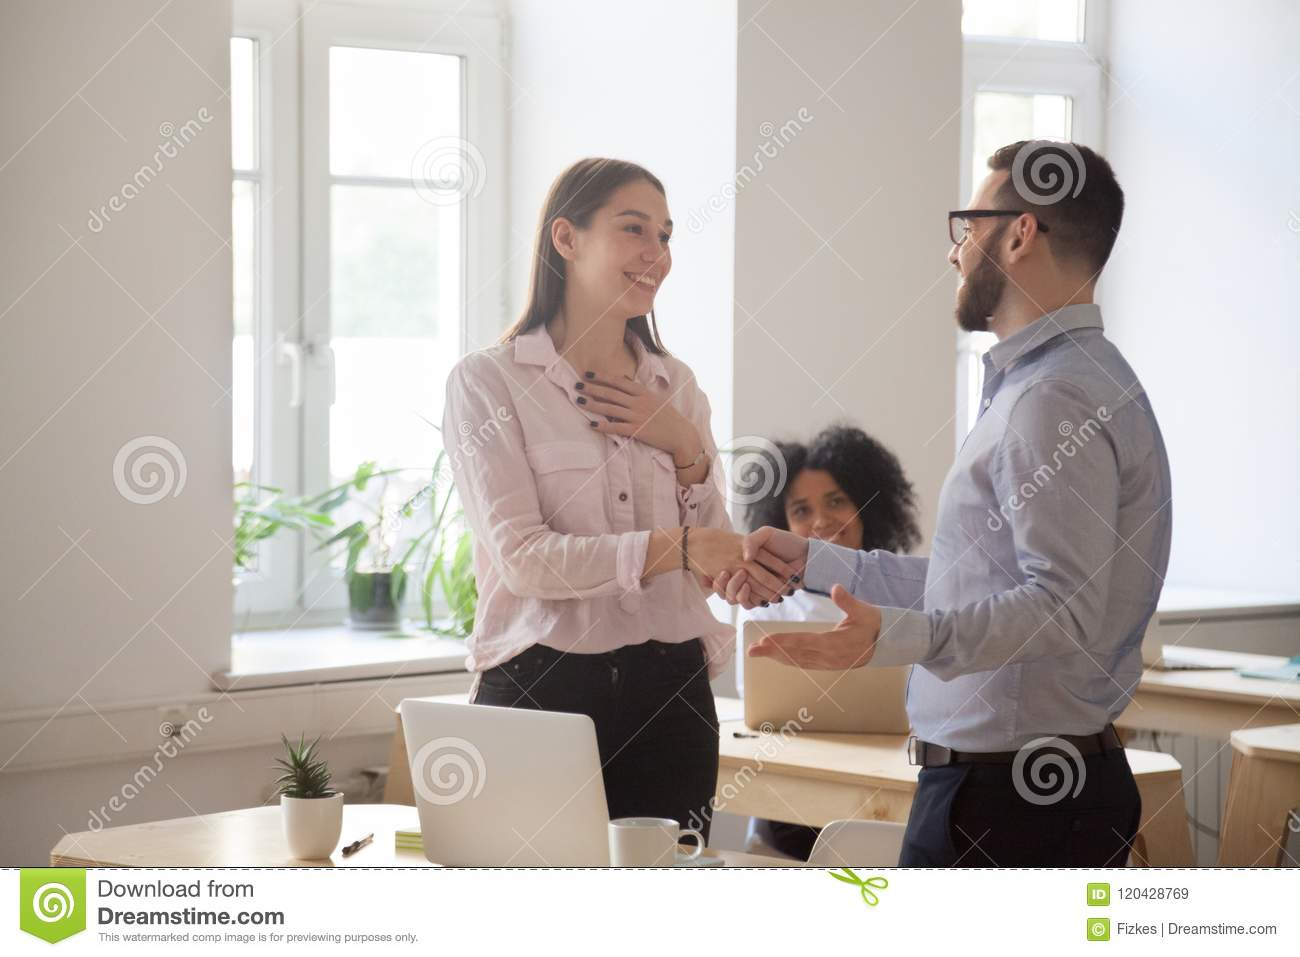 Male boss handshaking employee congratulating with promotion